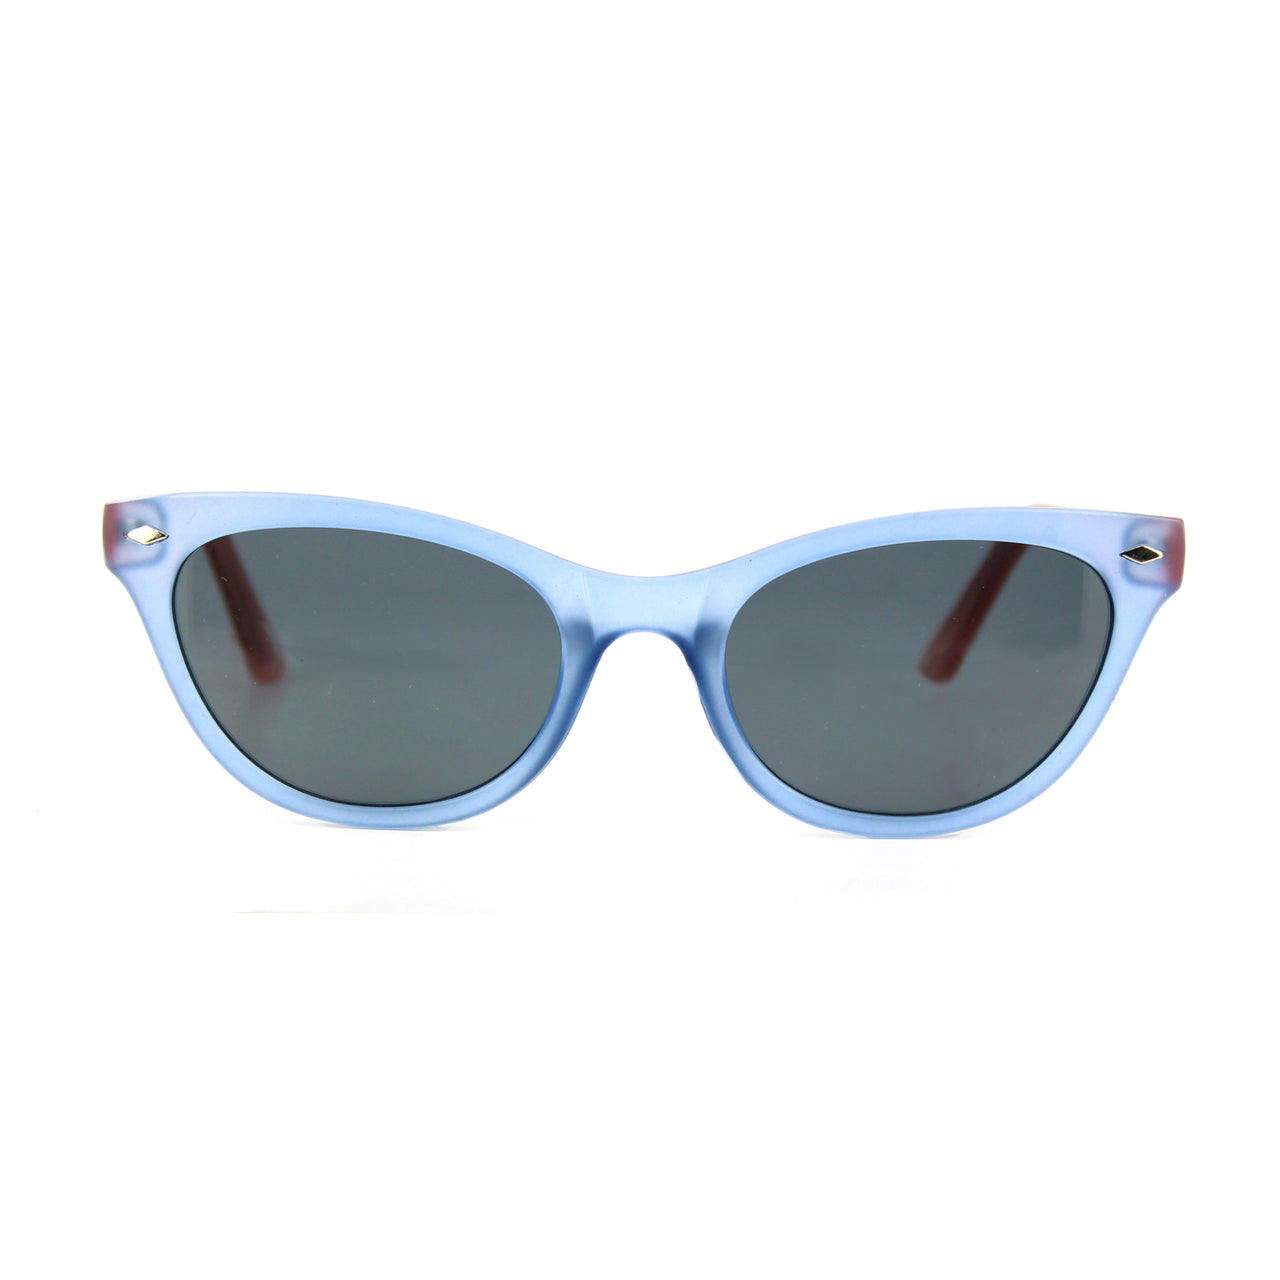 Belle - Sunglasses Blue / Pink